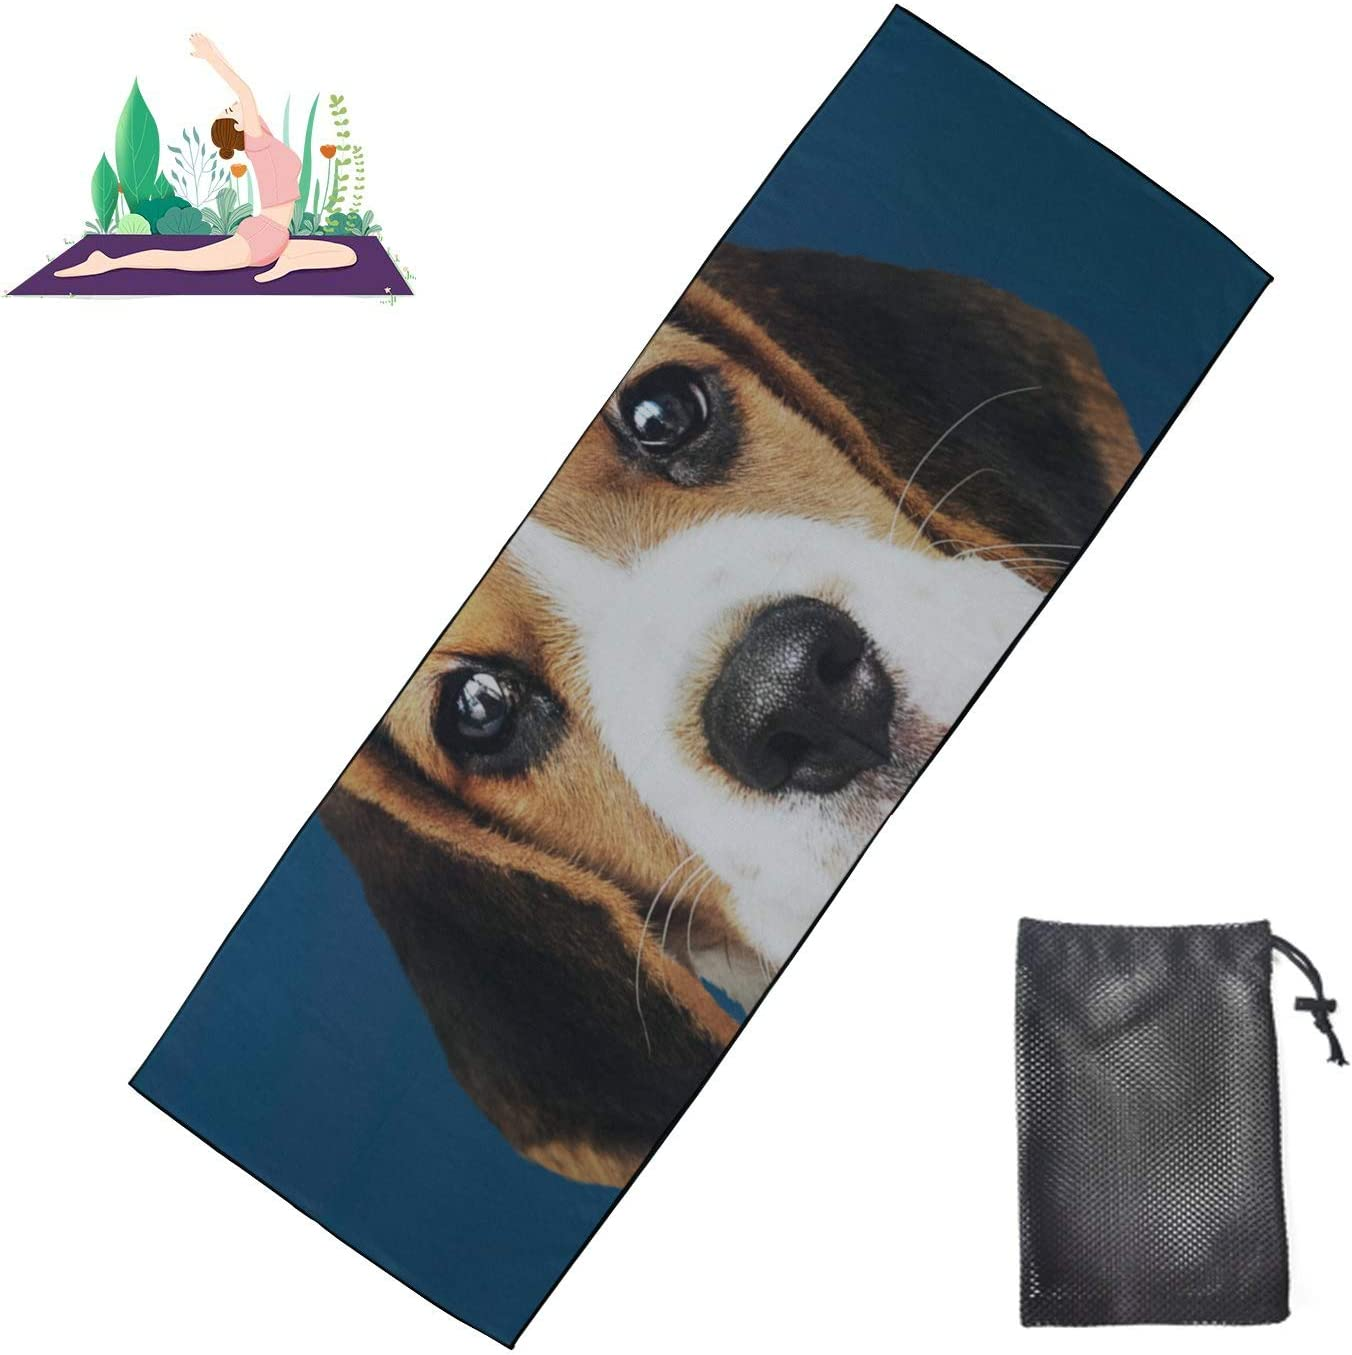 Huqalh Teen Yoga Mat Cute Happy Hot Men Towel Selling and selling Wear Dog New Shipping Free Tie